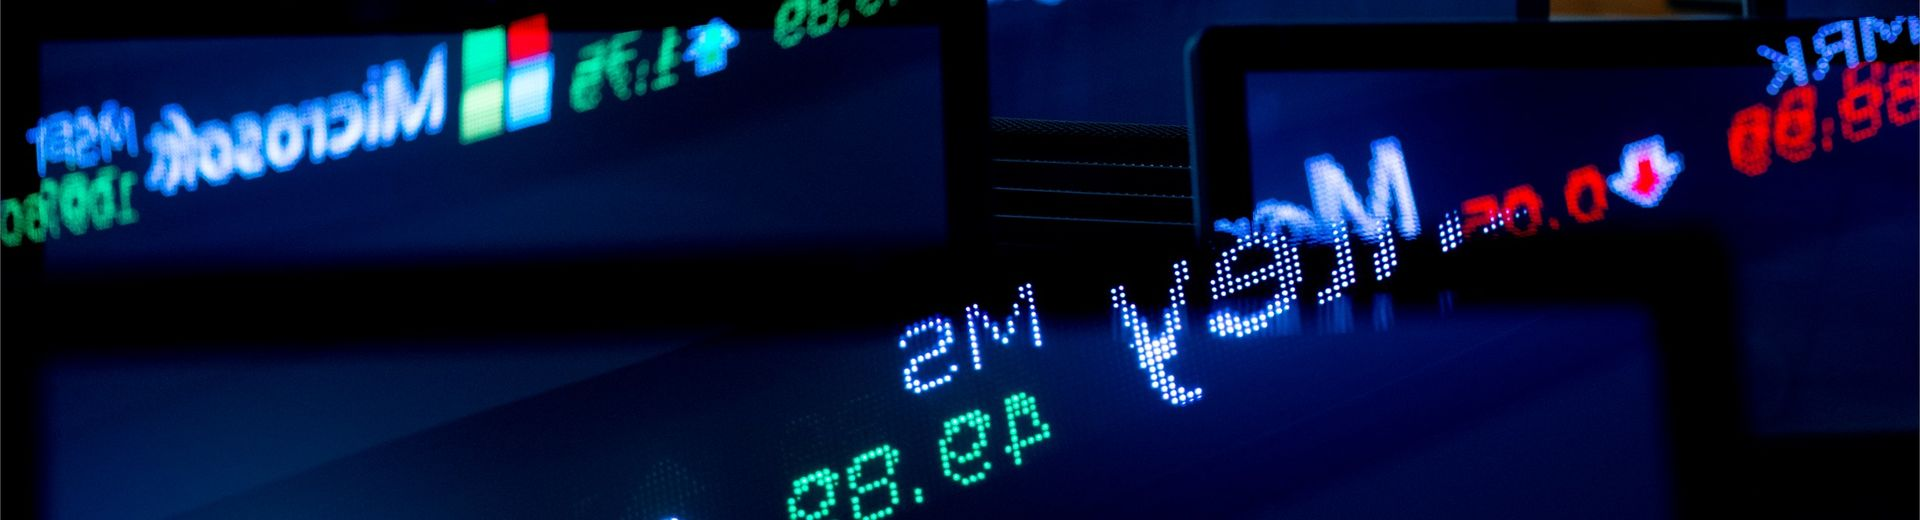 A digital display of Wall Street investment information.